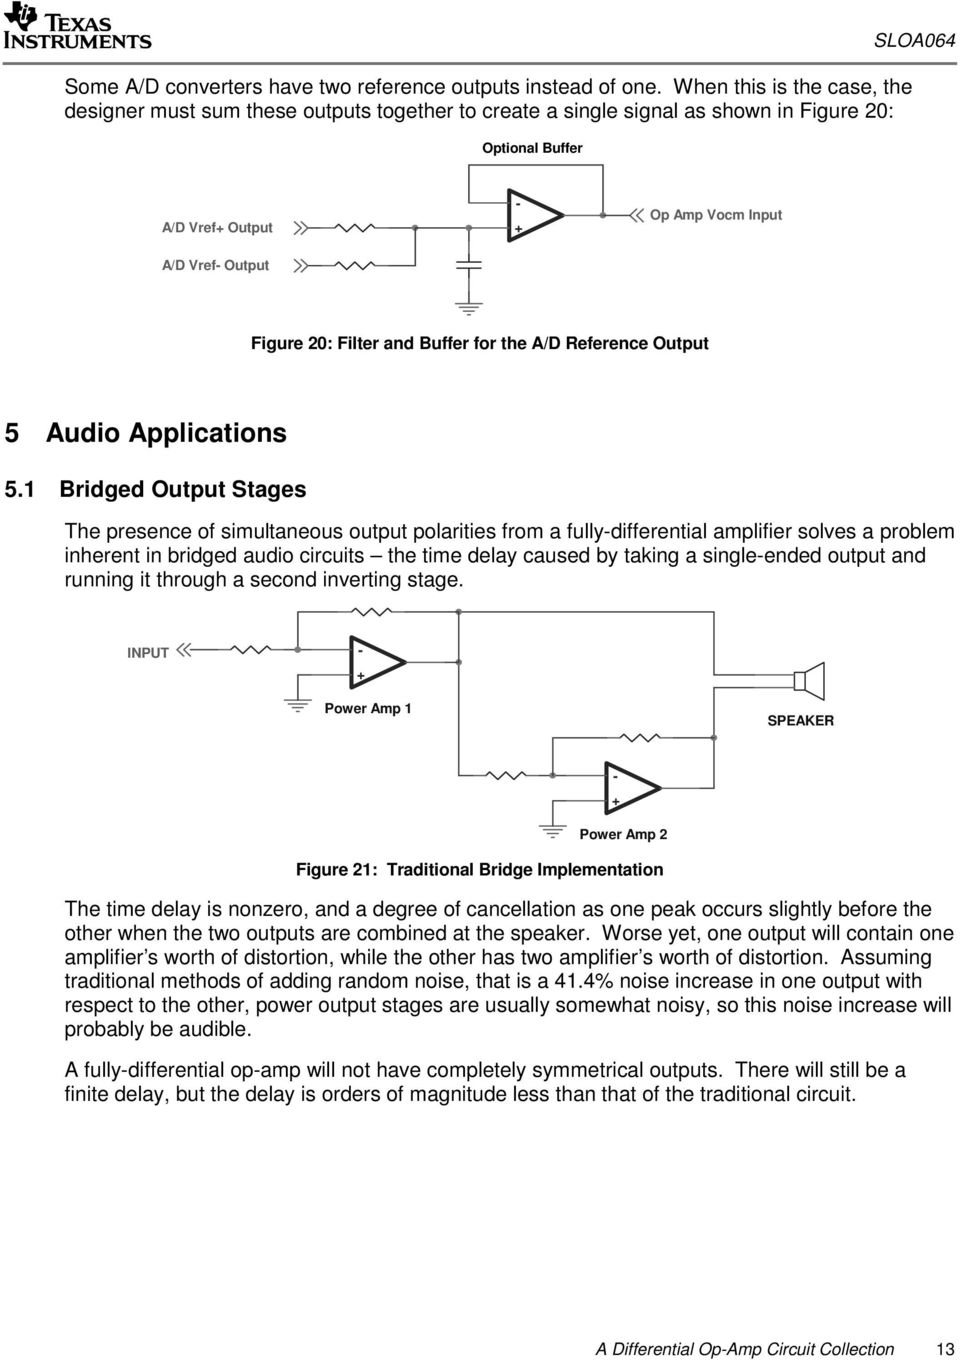 Stereo Tone Control Circuit Using Ic Op Amp Tl084 T Tda7293audiopoweramplifier100watts Power Audio Amplifier A Differential Opamp Collection And Buffer For The D Reference Output Applications